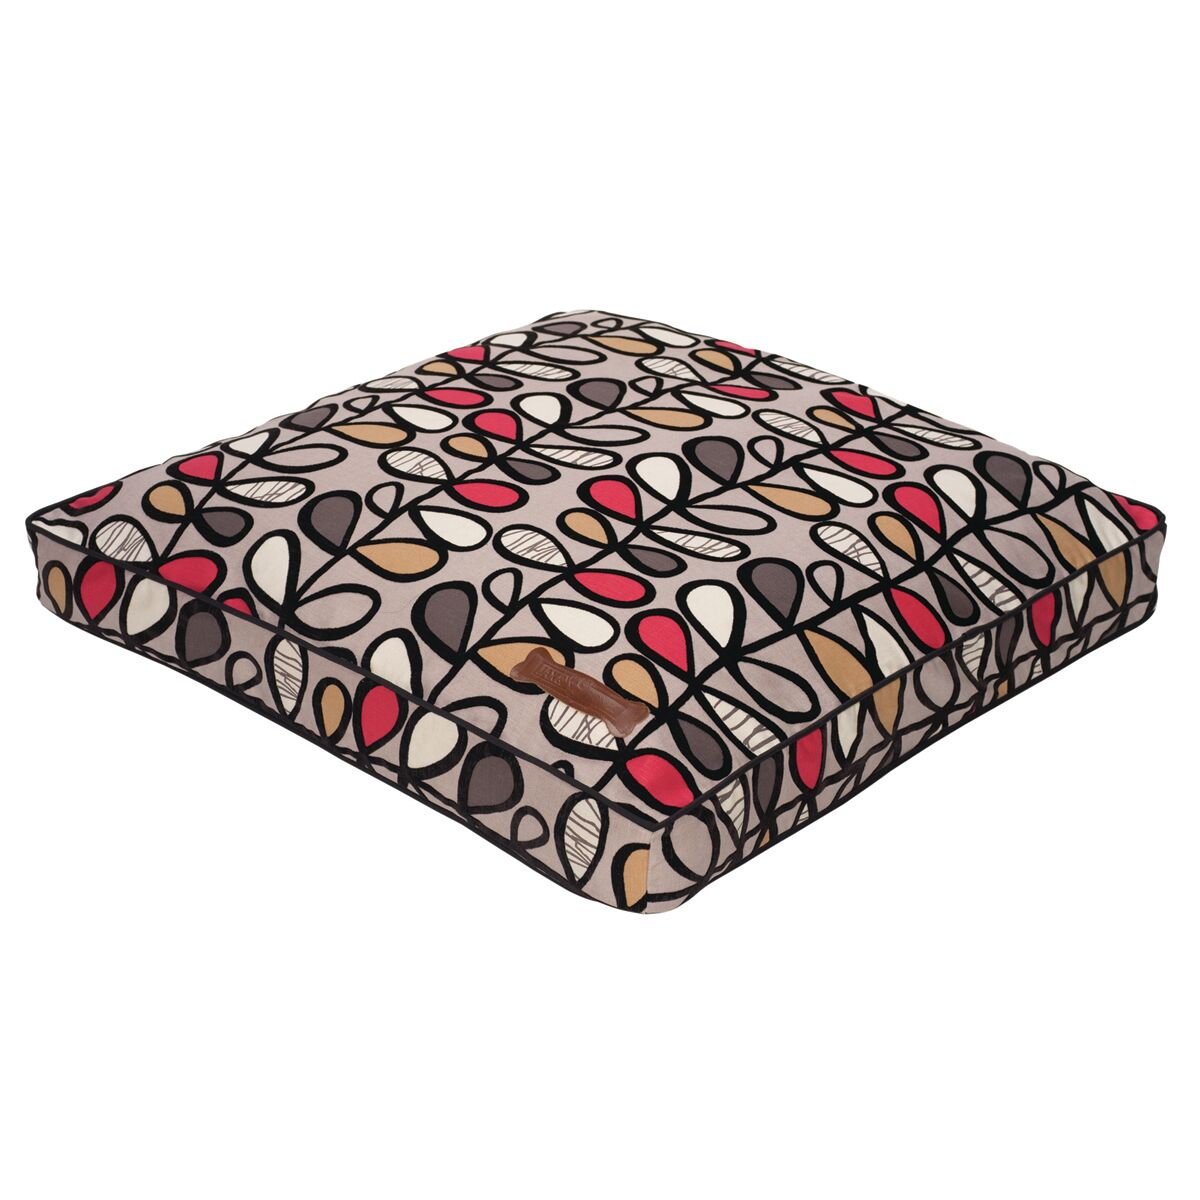 Vines Flocked Rectangular Pillow Bed Size: Medium - 28